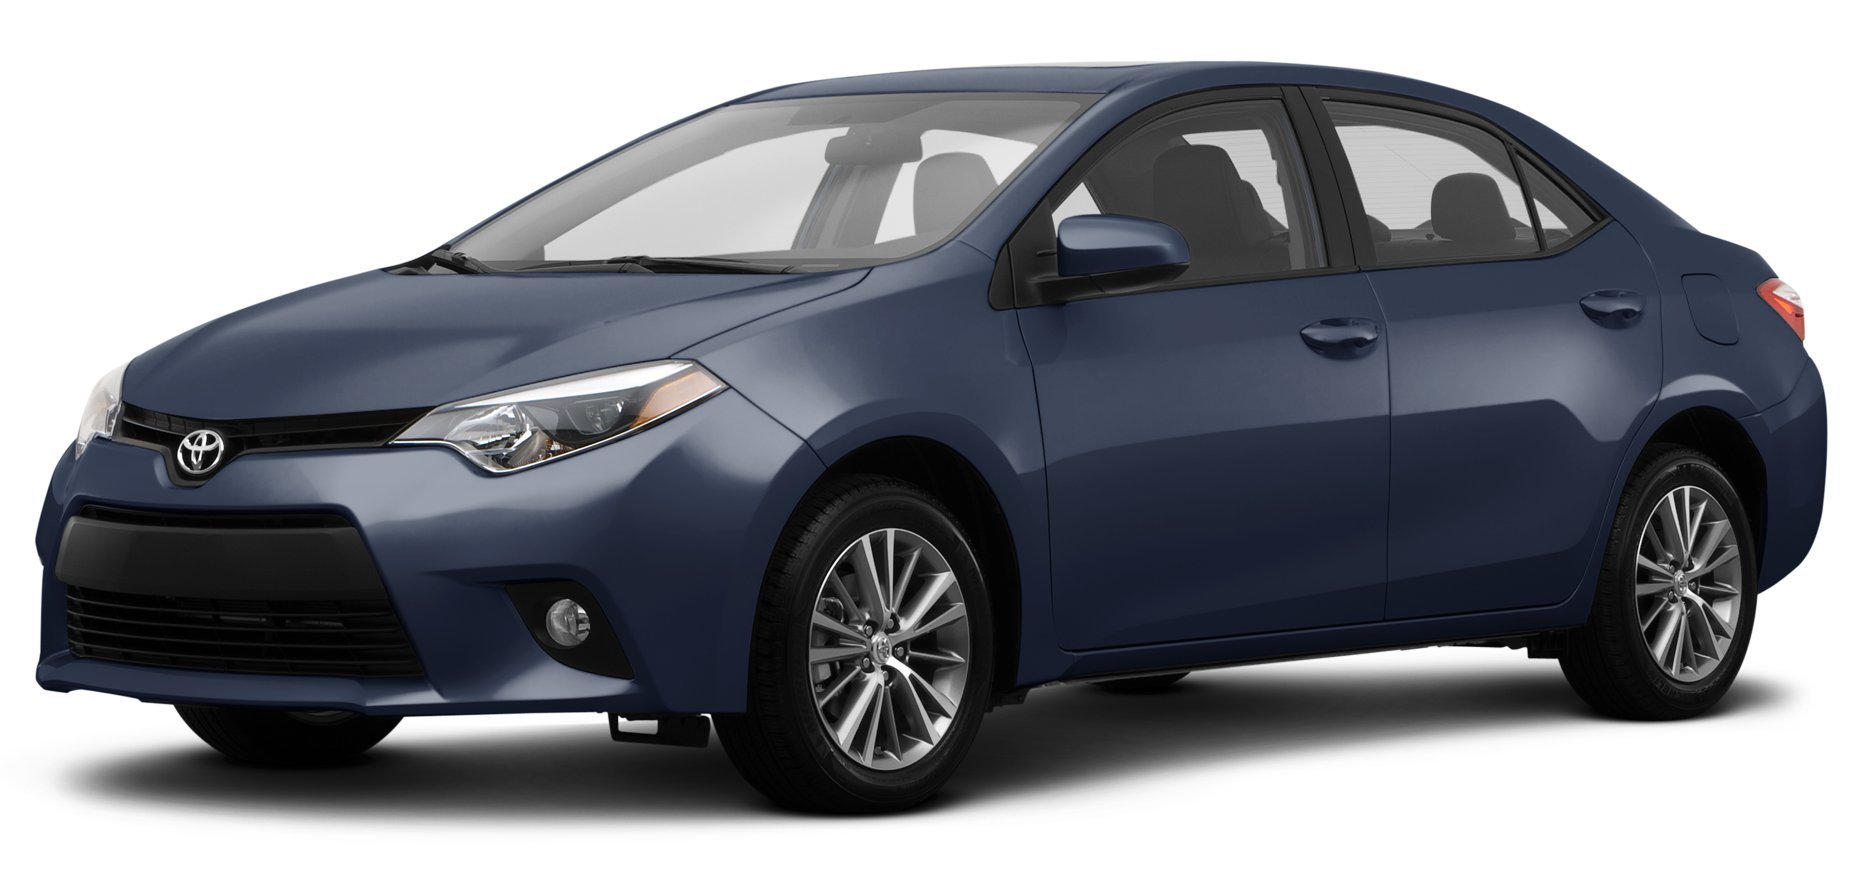 2015 toyota corolla reviews images and specs vehicles. Black Bedroom Furniture Sets. Home Design Ideas